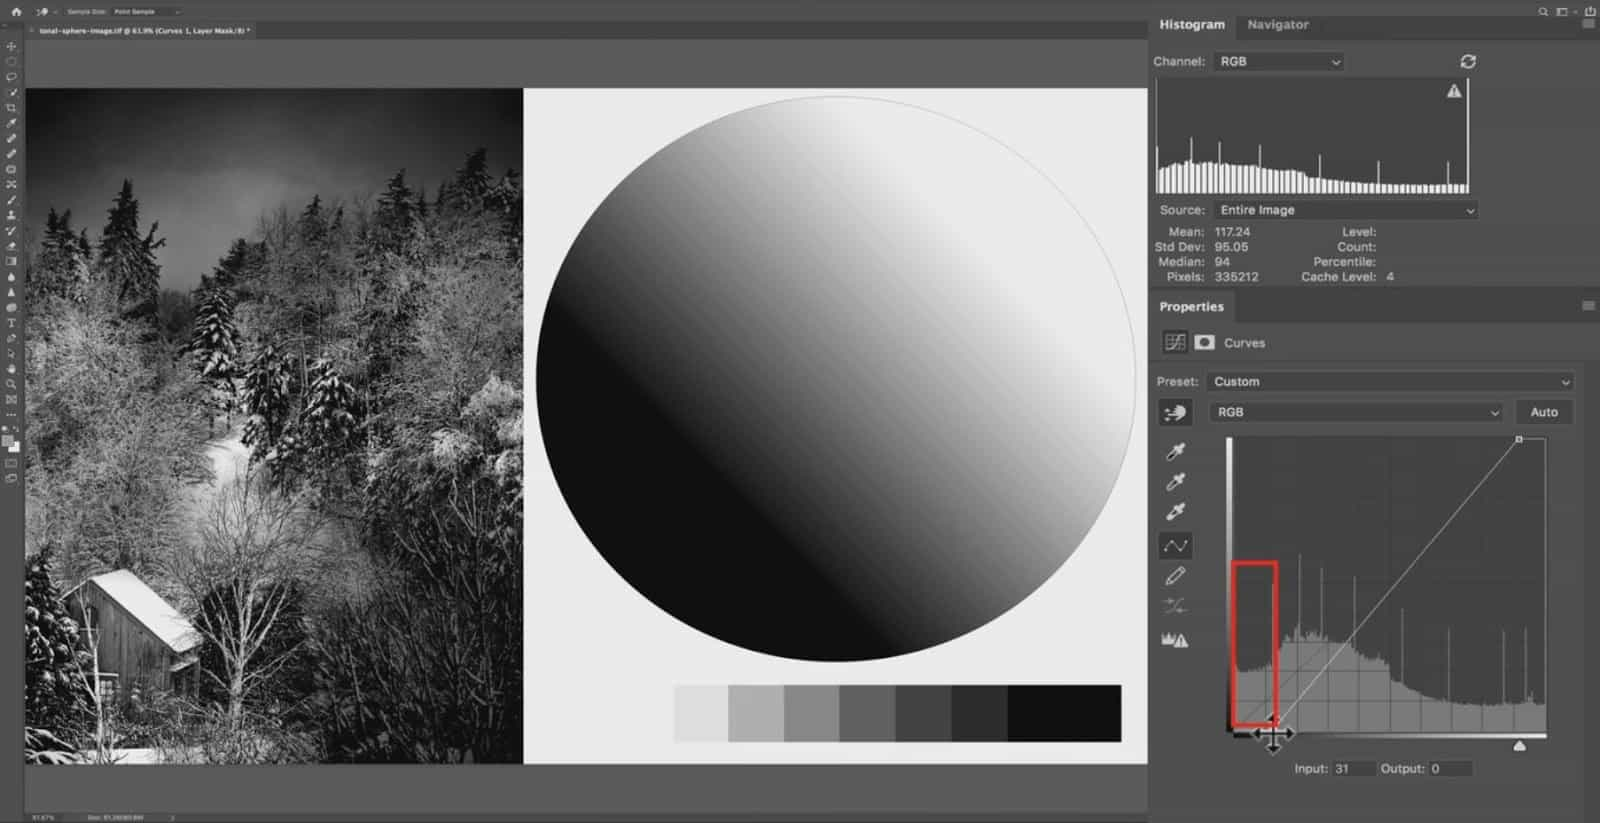 Changing Tones in the Histogram - CreativeRAW